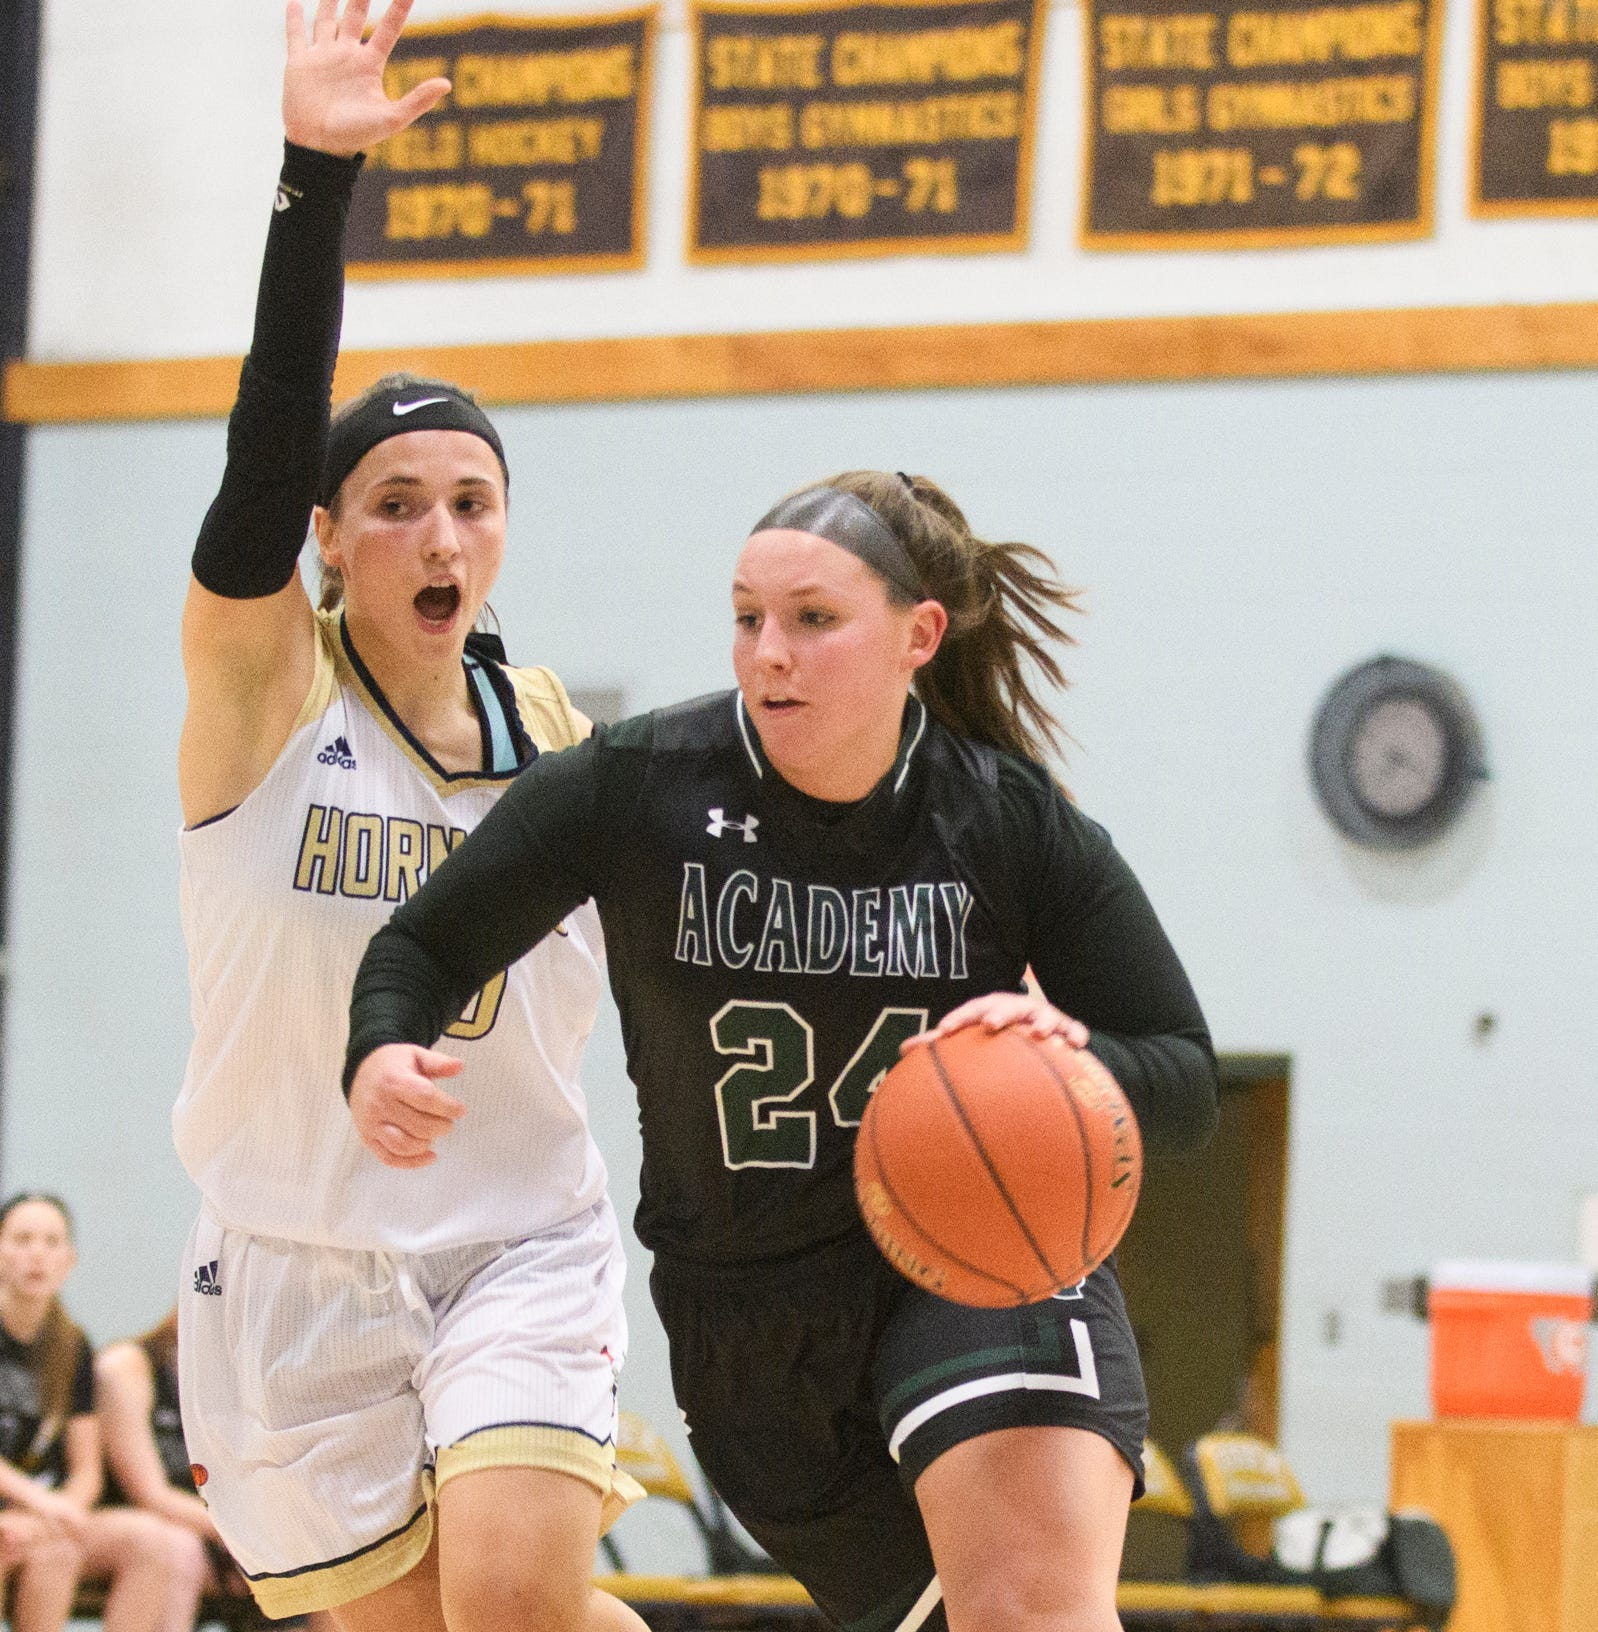 Thursday's H.S. highlights: St. Johnsbury girls basketball cruises over Essex